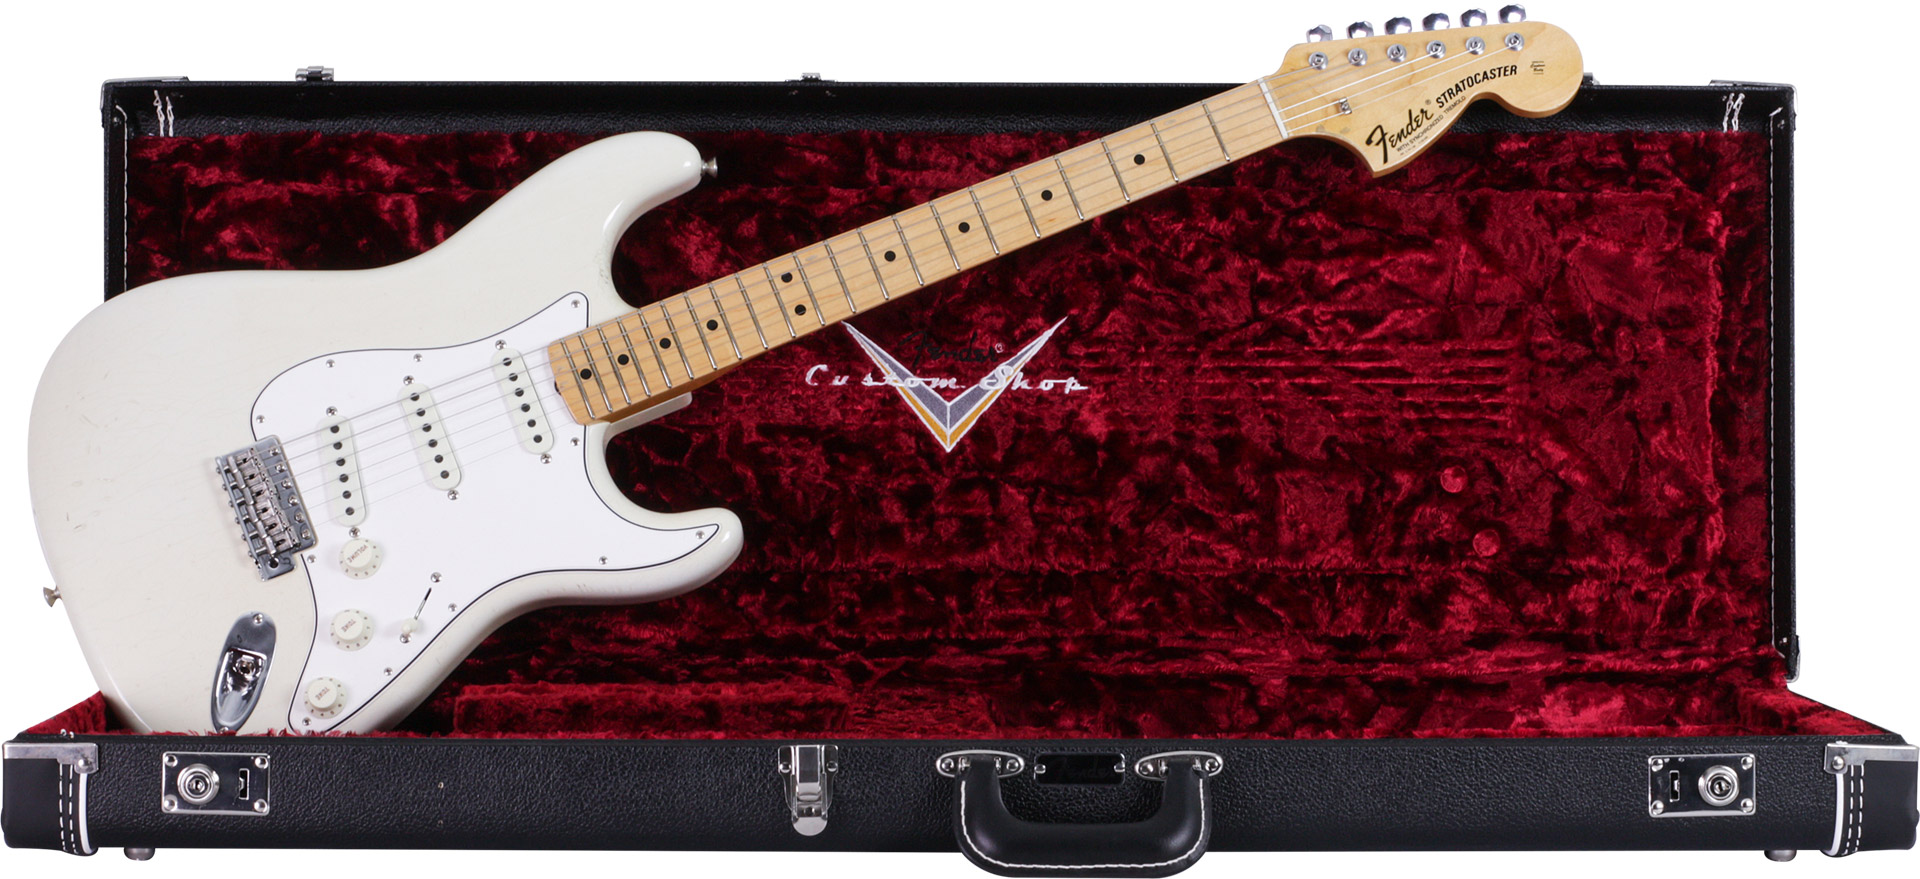 GUITARRA FENDER SIG SERIES JIMI HENDRIX IZABELLA LTD EDITION 150-8692-805 AGED OLYMPIC WHITE